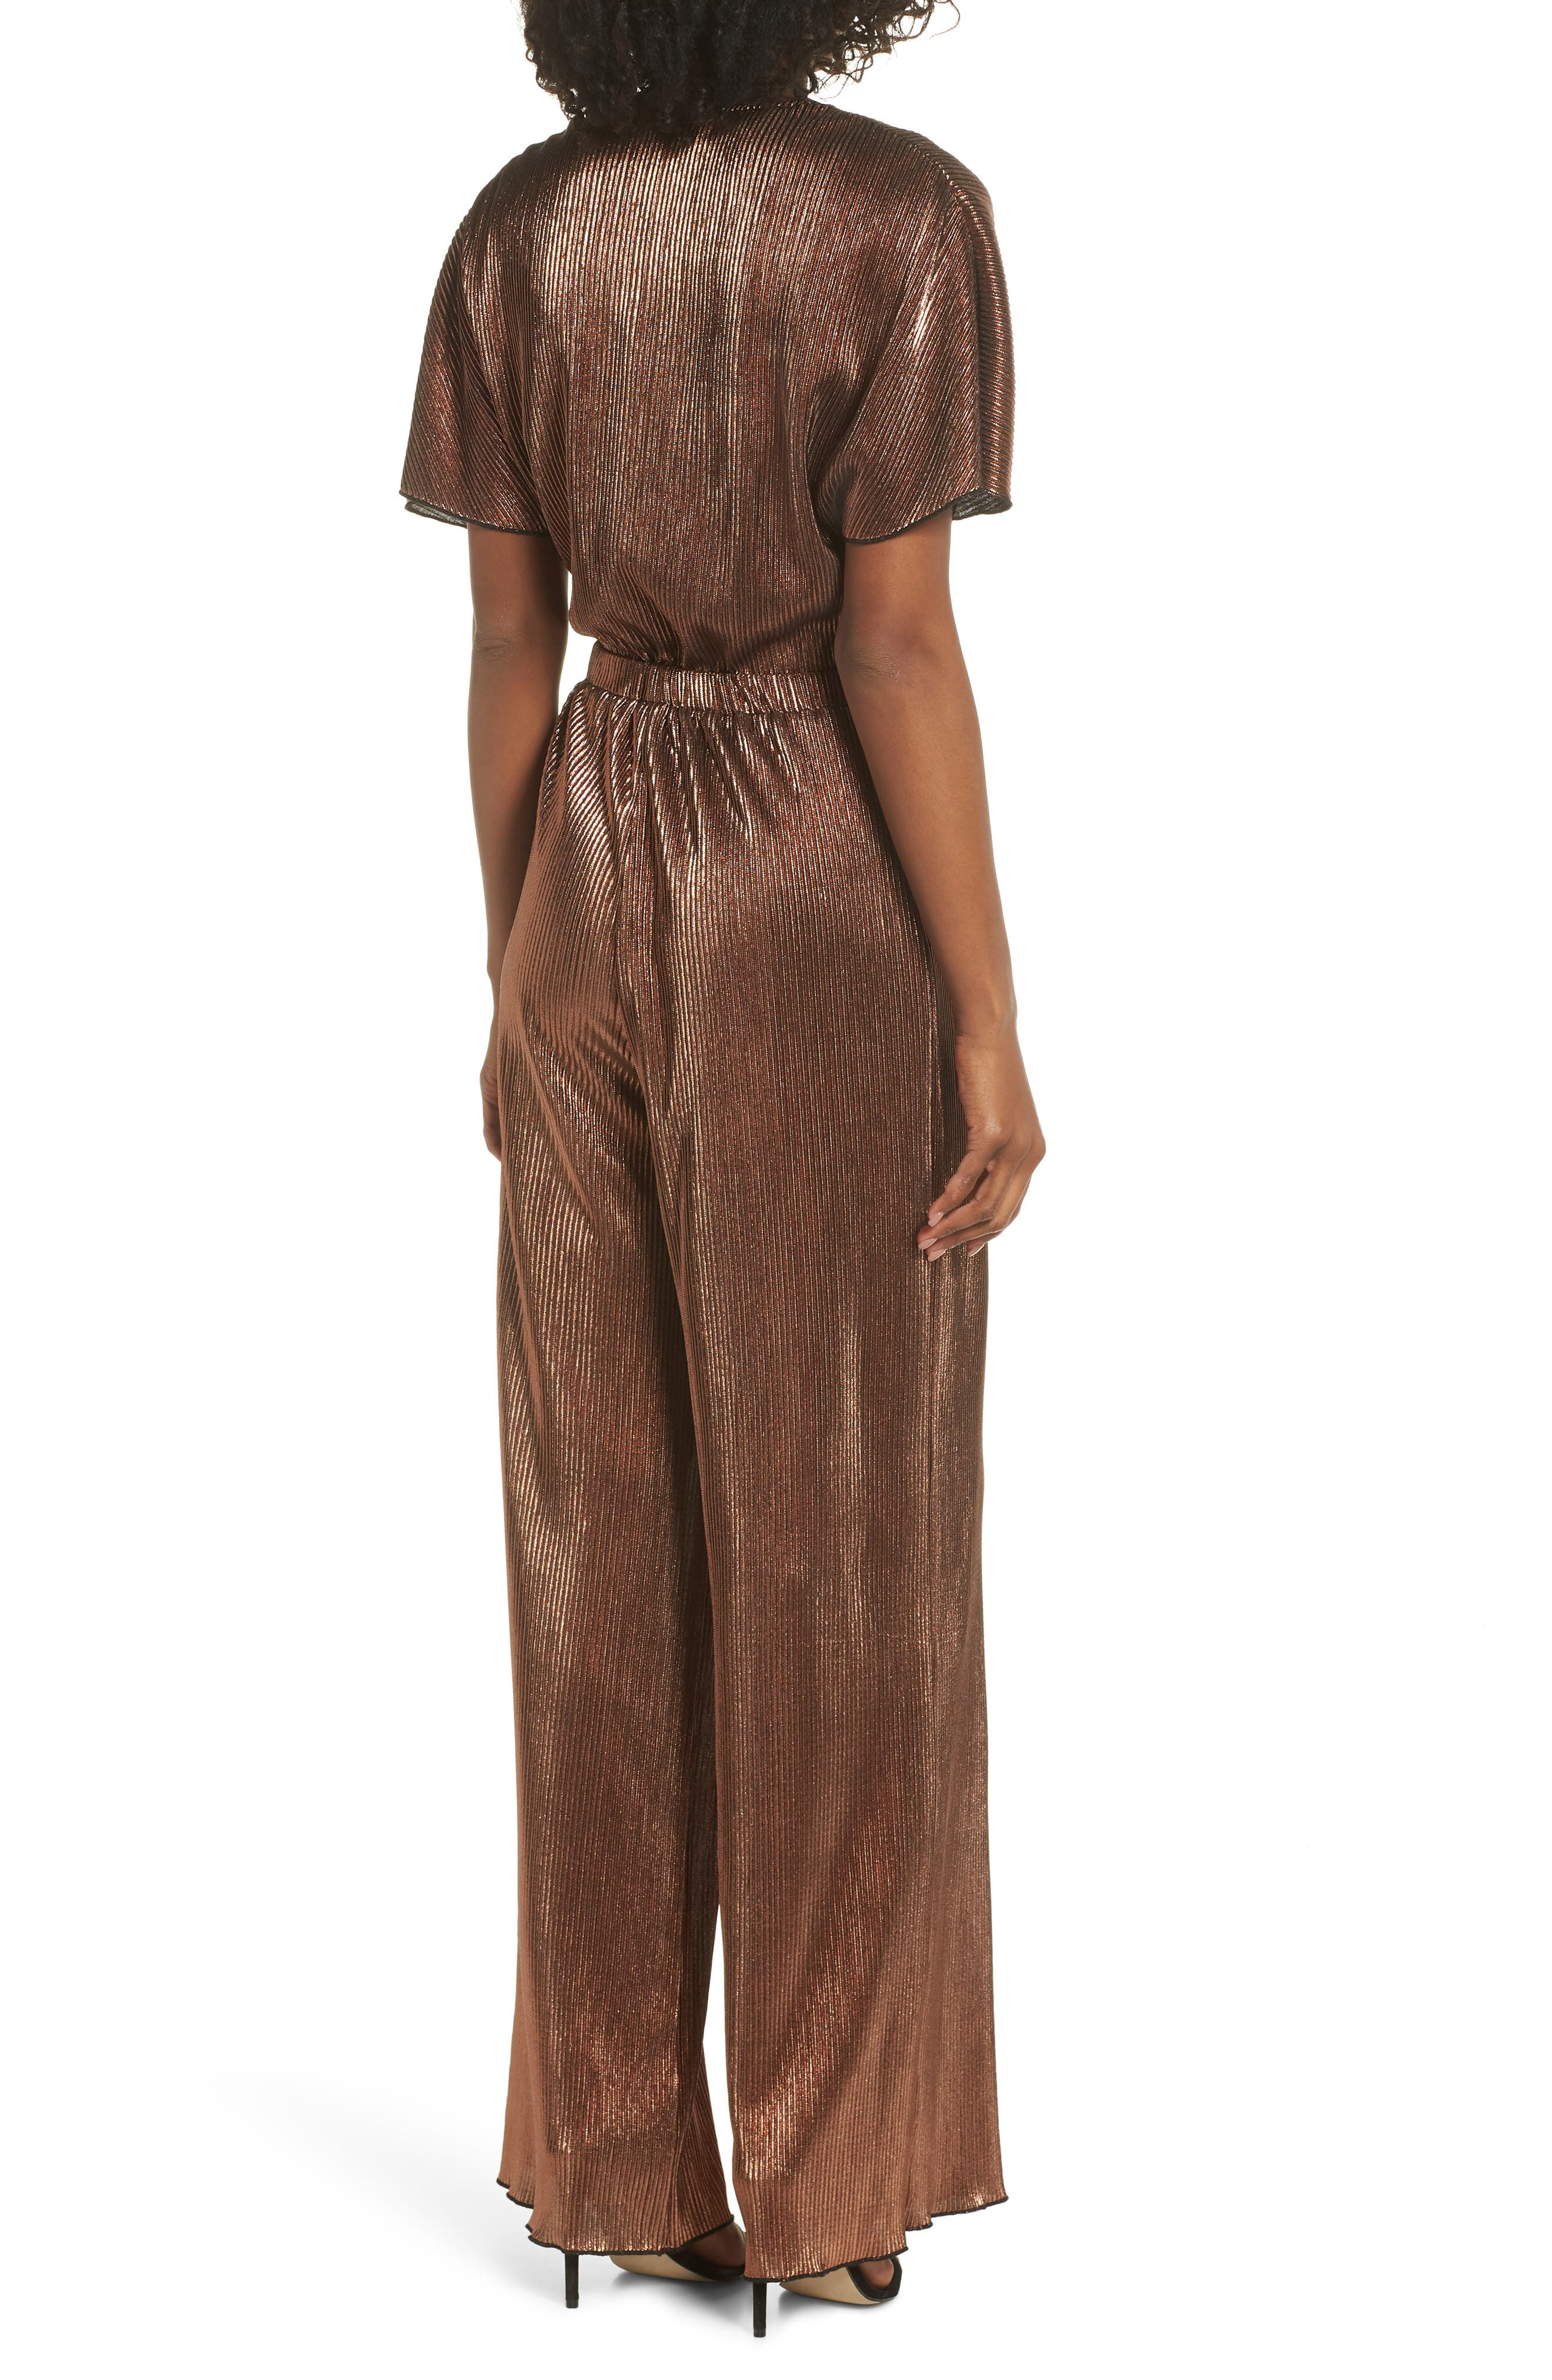 CHARLES HENRY, Crossover Jumpsuit, Alternate thumbnail 2, color, 220